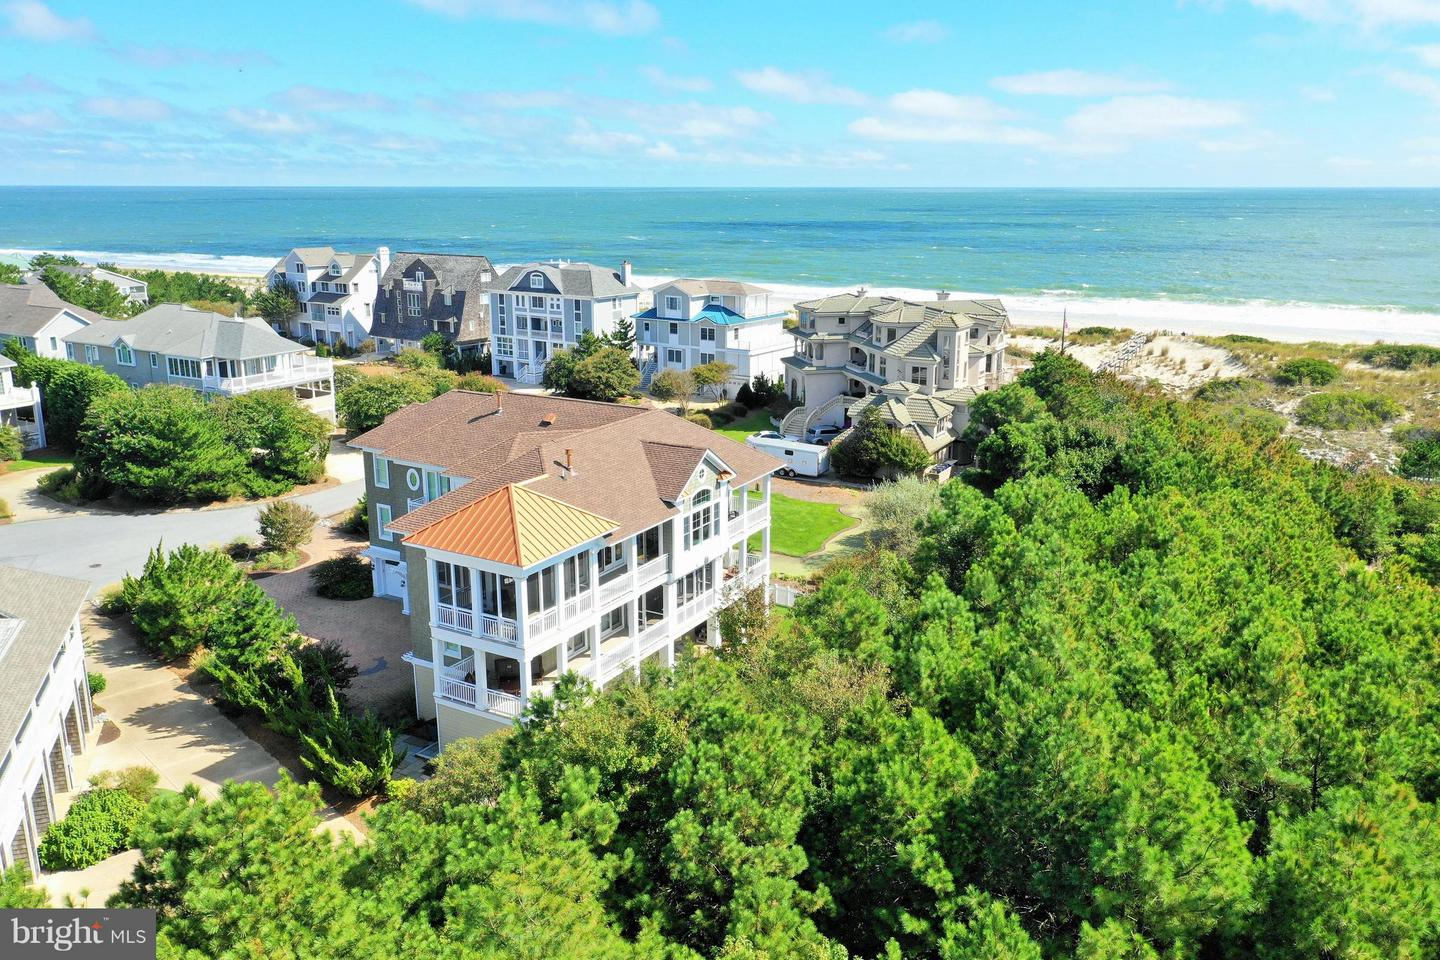 1002293530-300720129592-2018-09-25-15-08-25 31 Hall Ave | Rehoboth Beach, DE Real Estate For Sale | MLS# 1002293530  - 1st Choice Properties